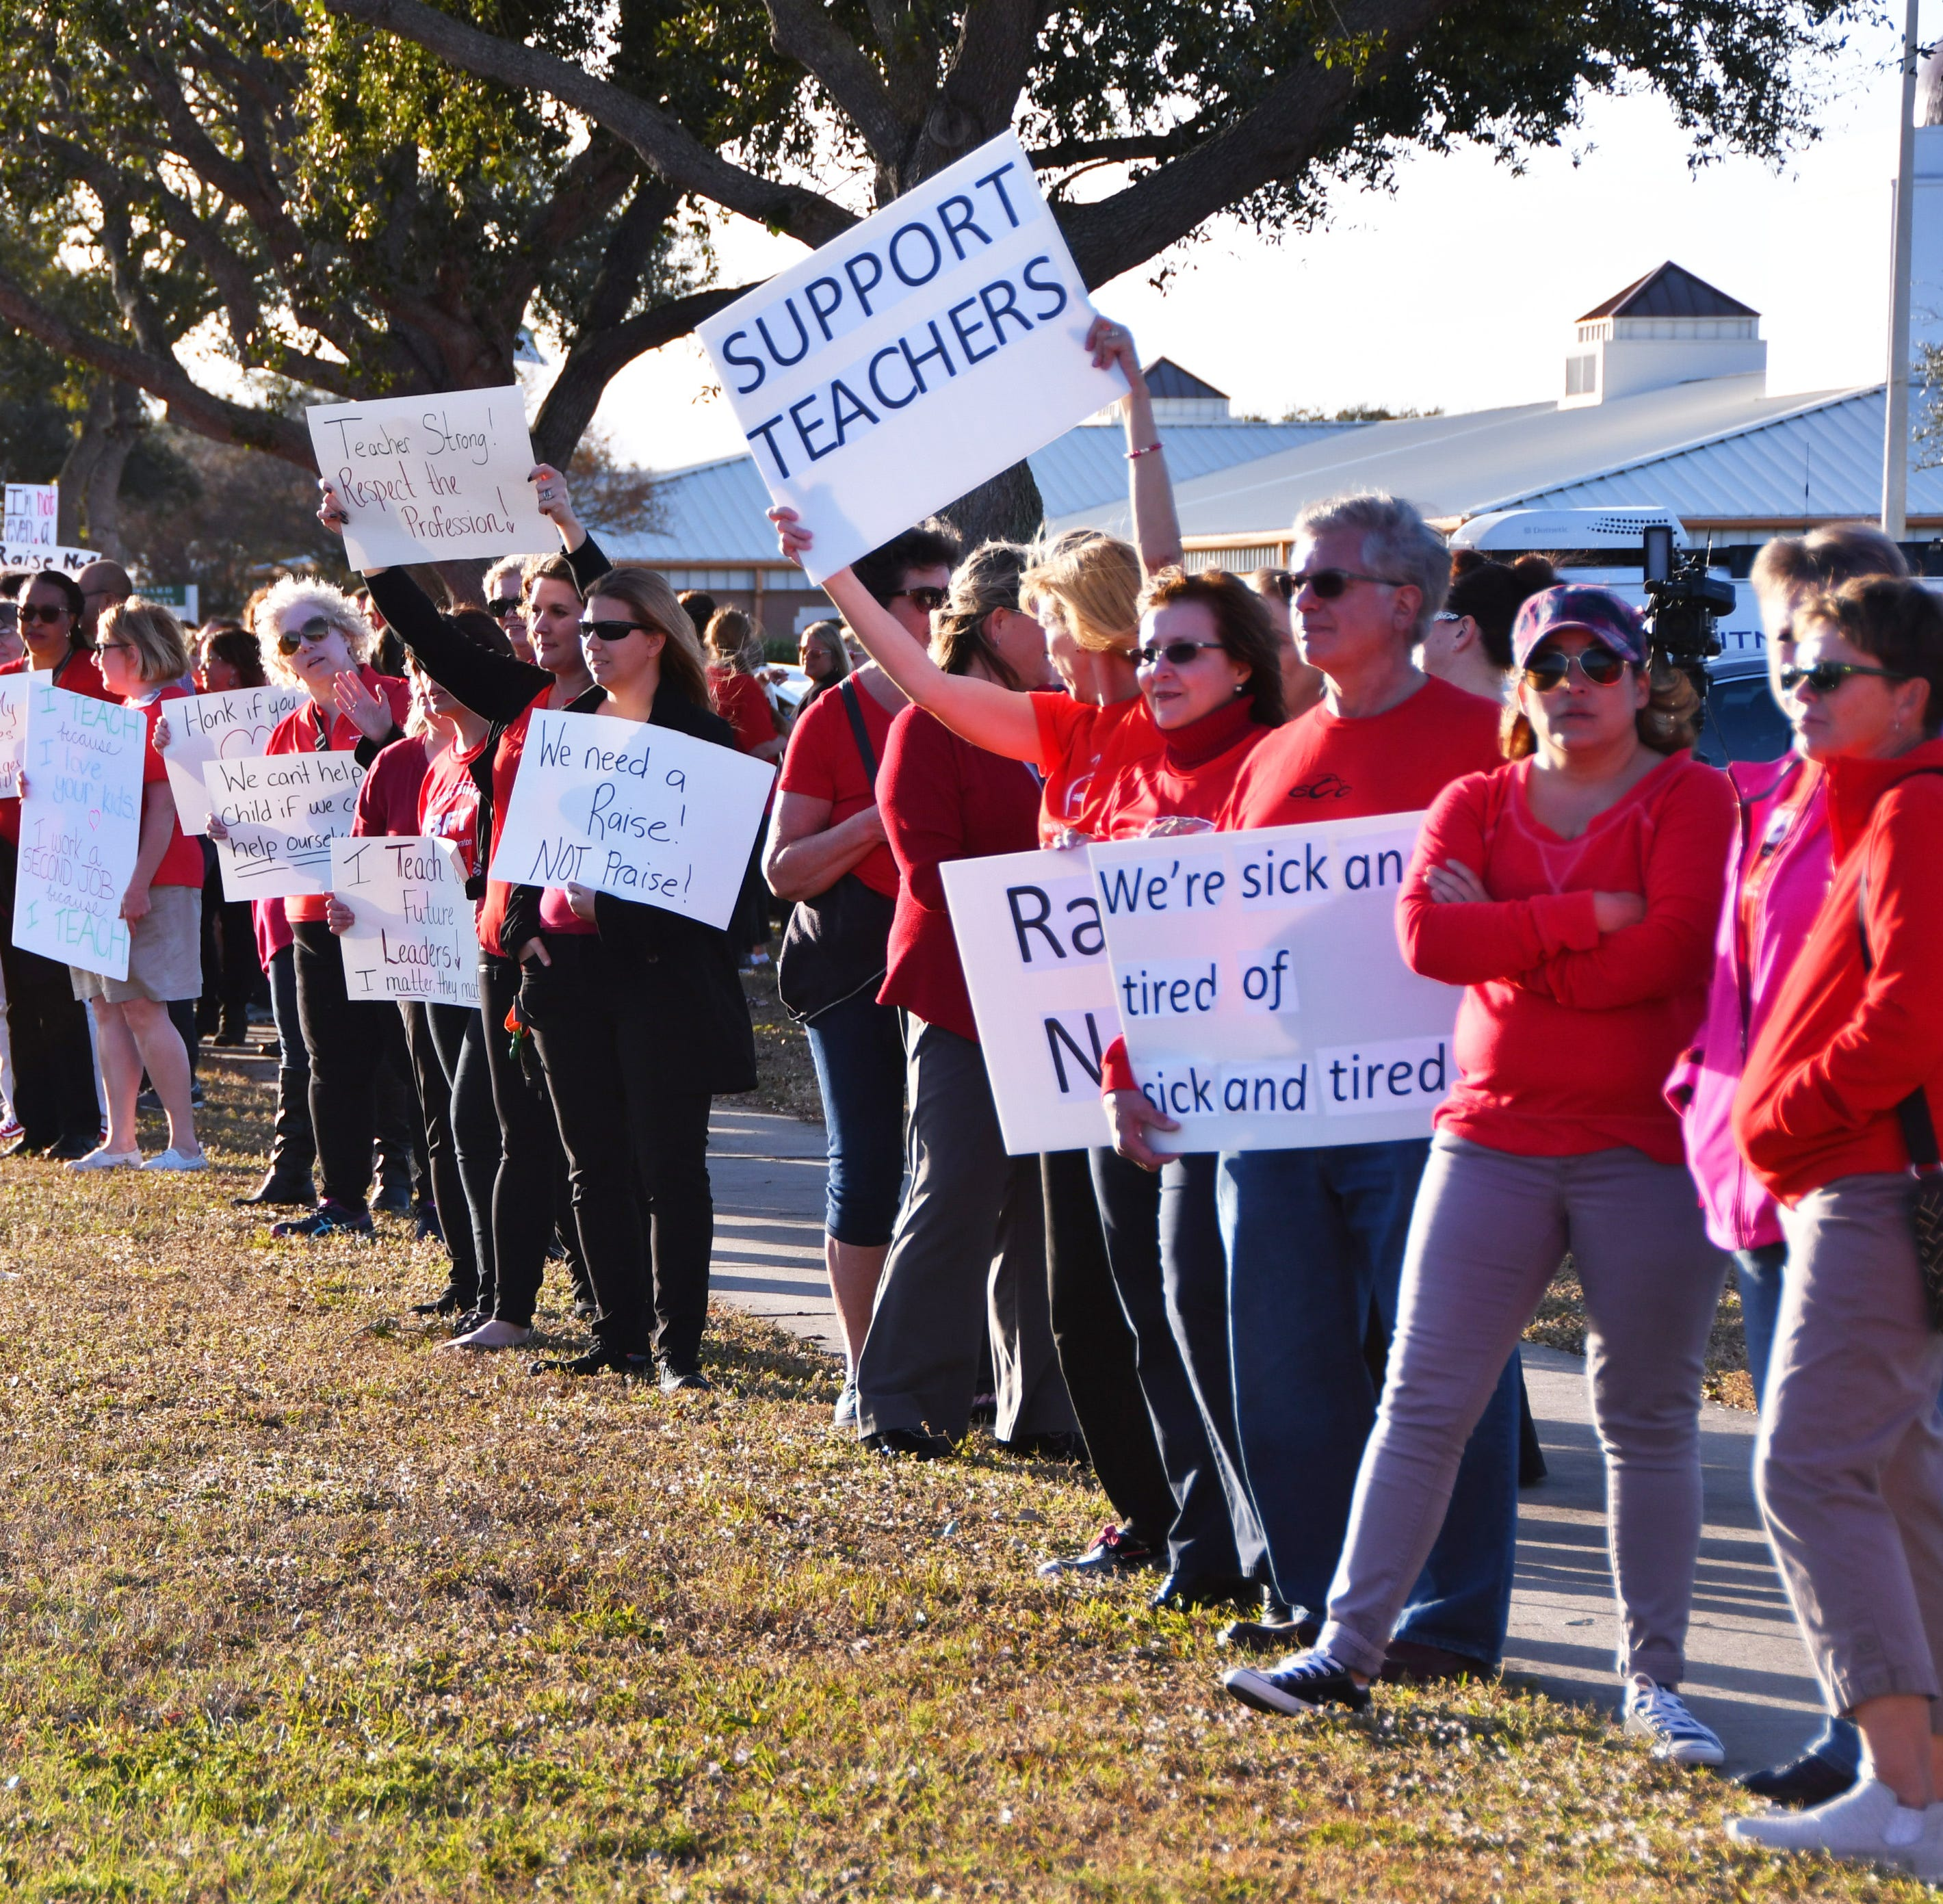 Brevard teachers union lowers request for raises, following months of protests